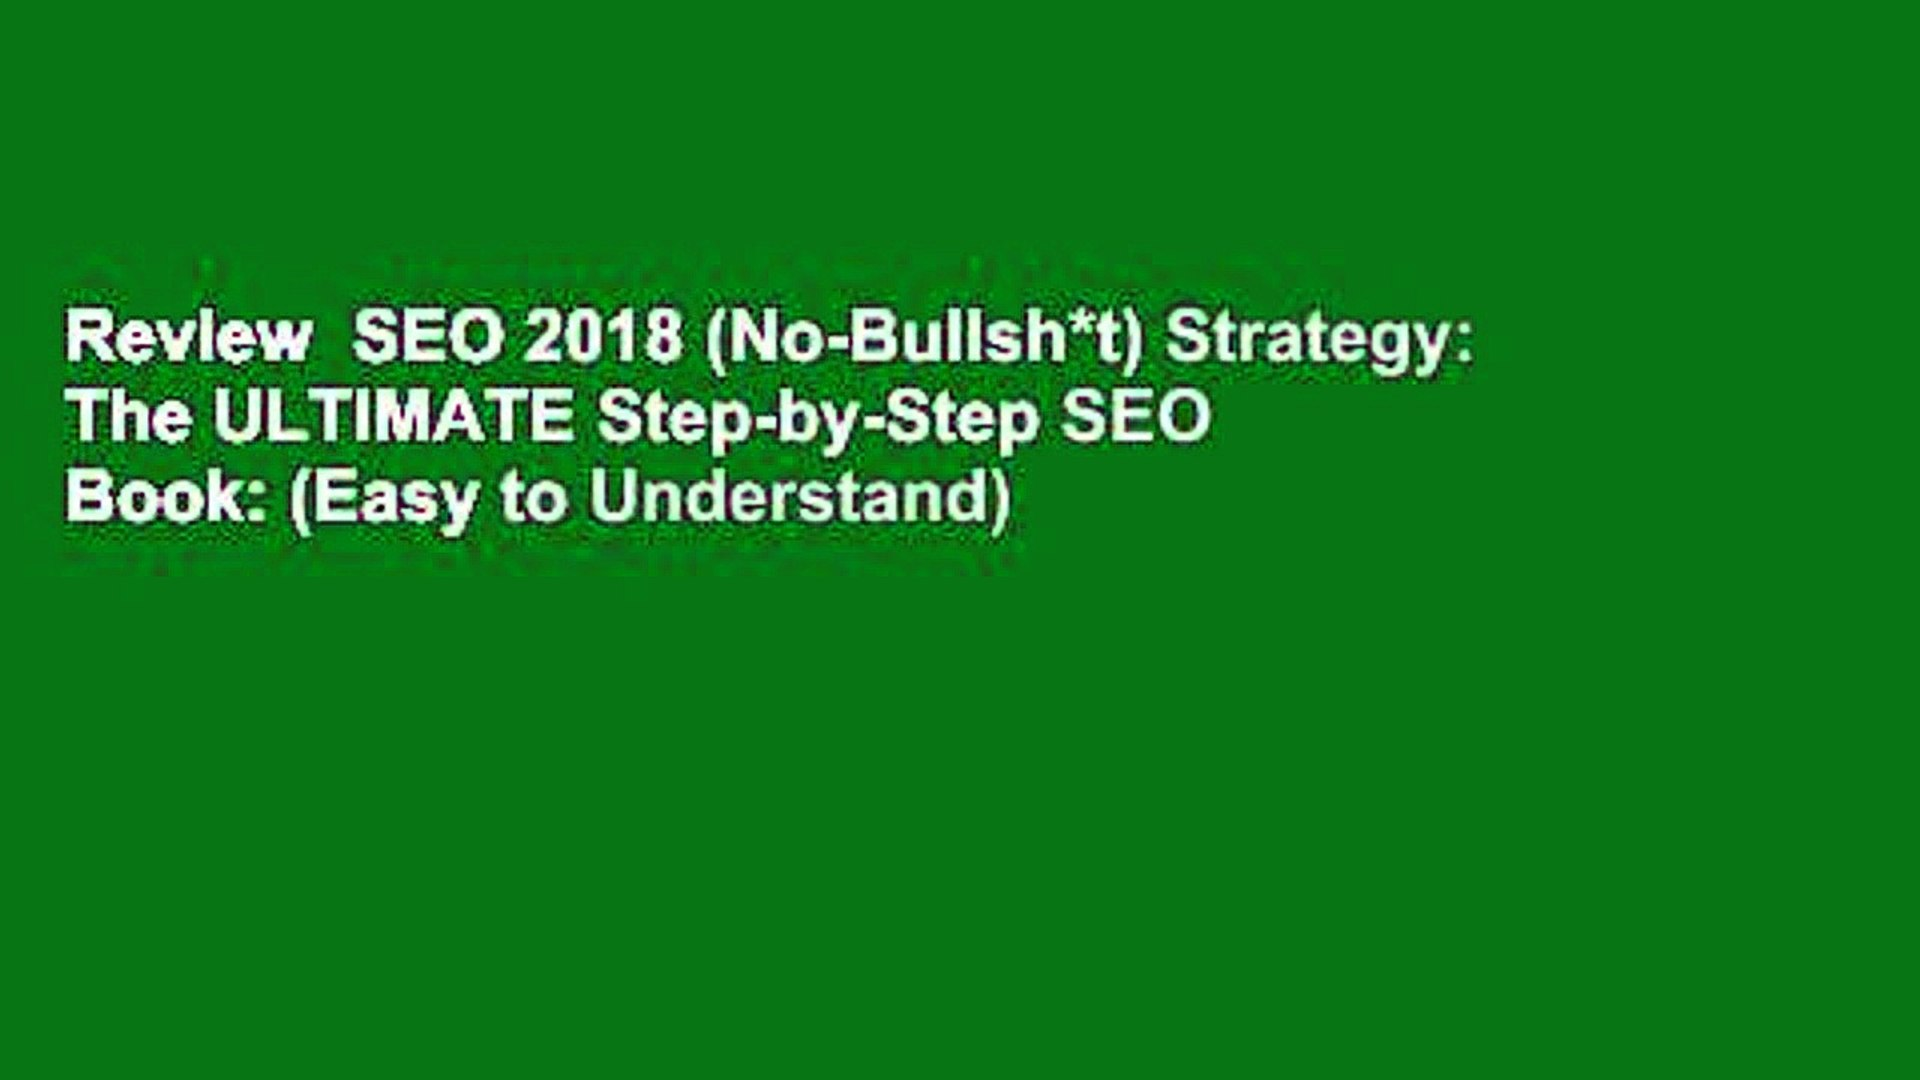 Review  SEO 2018 (No-Bullsh*t) Strategy: The ULTIMATE Step-by-Step SEO Book: (Easy to Understand)